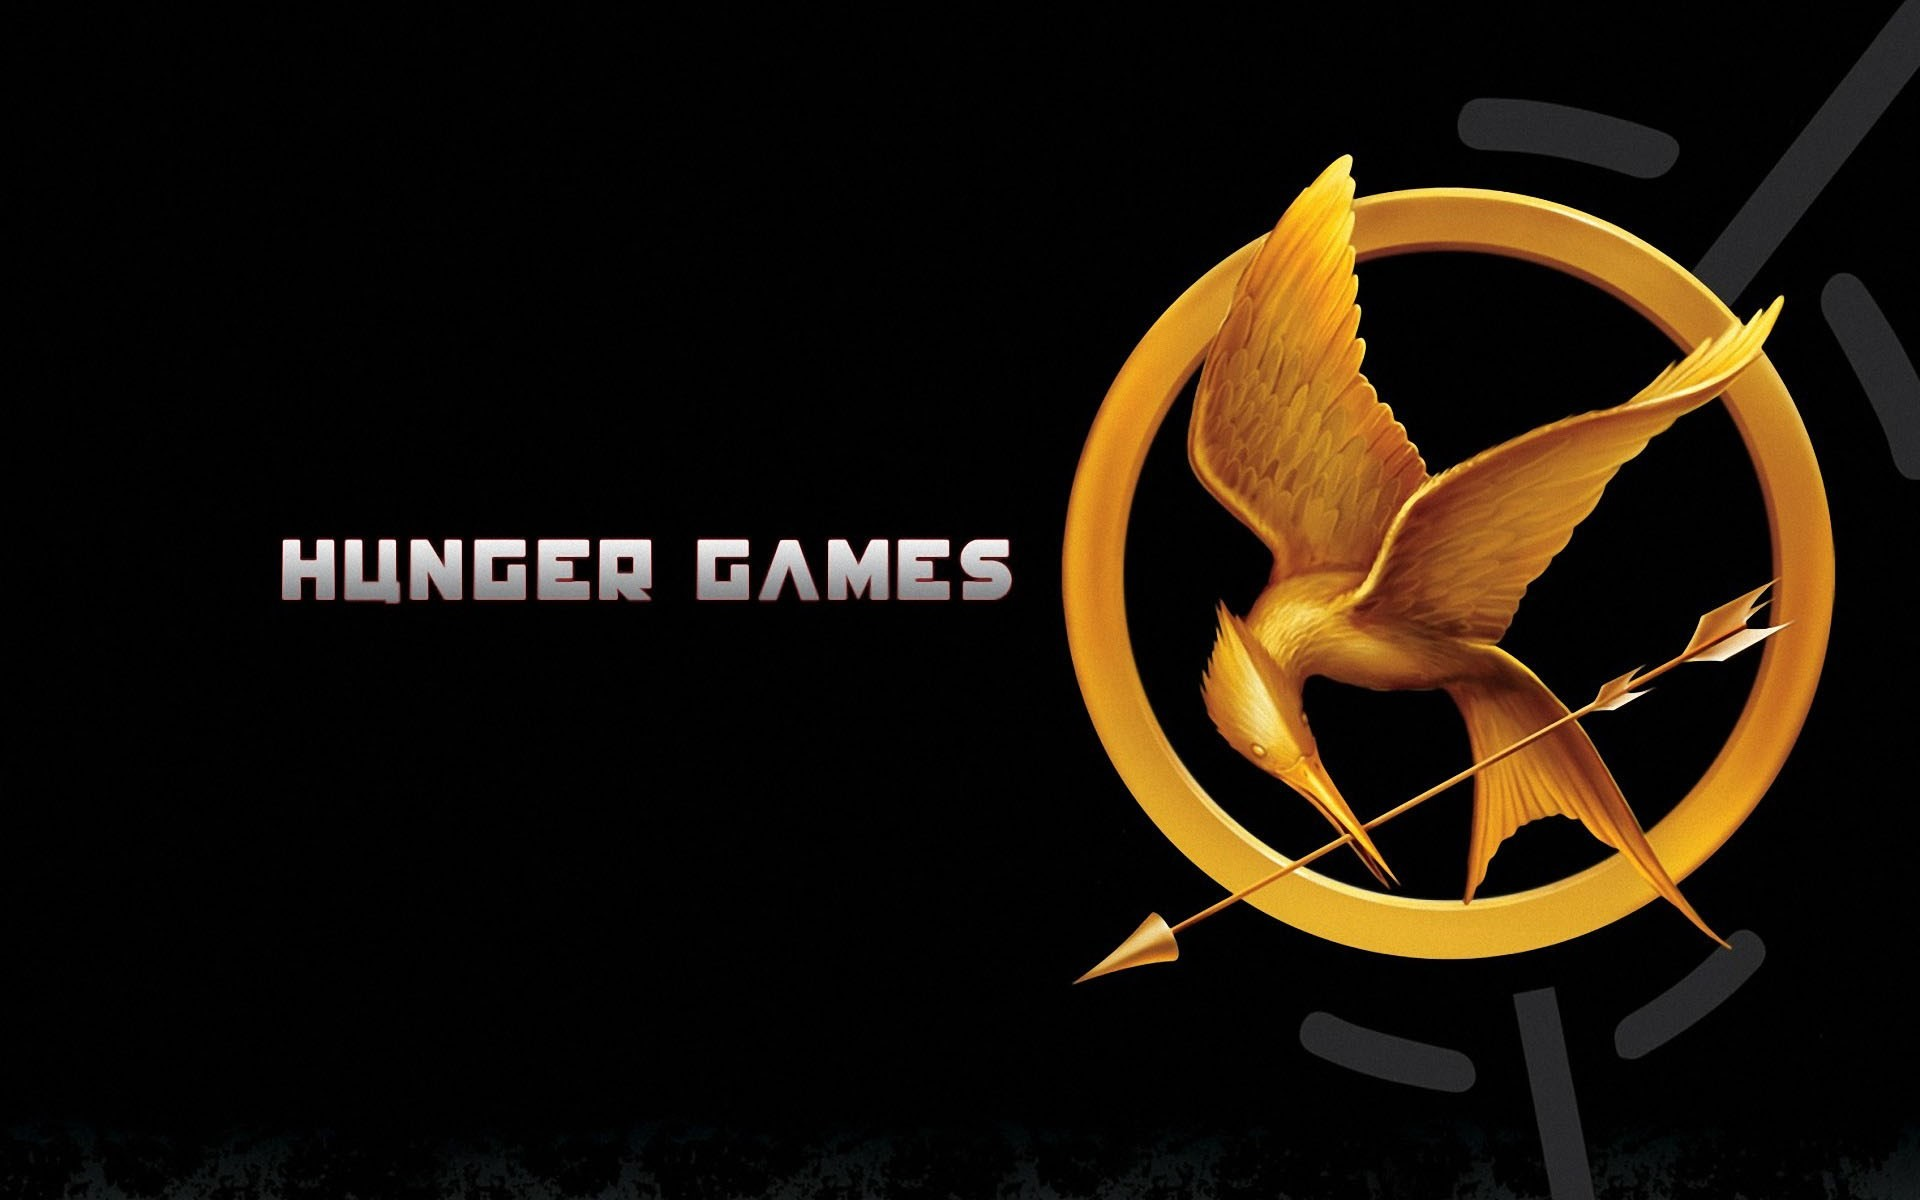 1920x1200 2017-03-03 - the hunger games pic desktop nexus wallpaper, #1573103